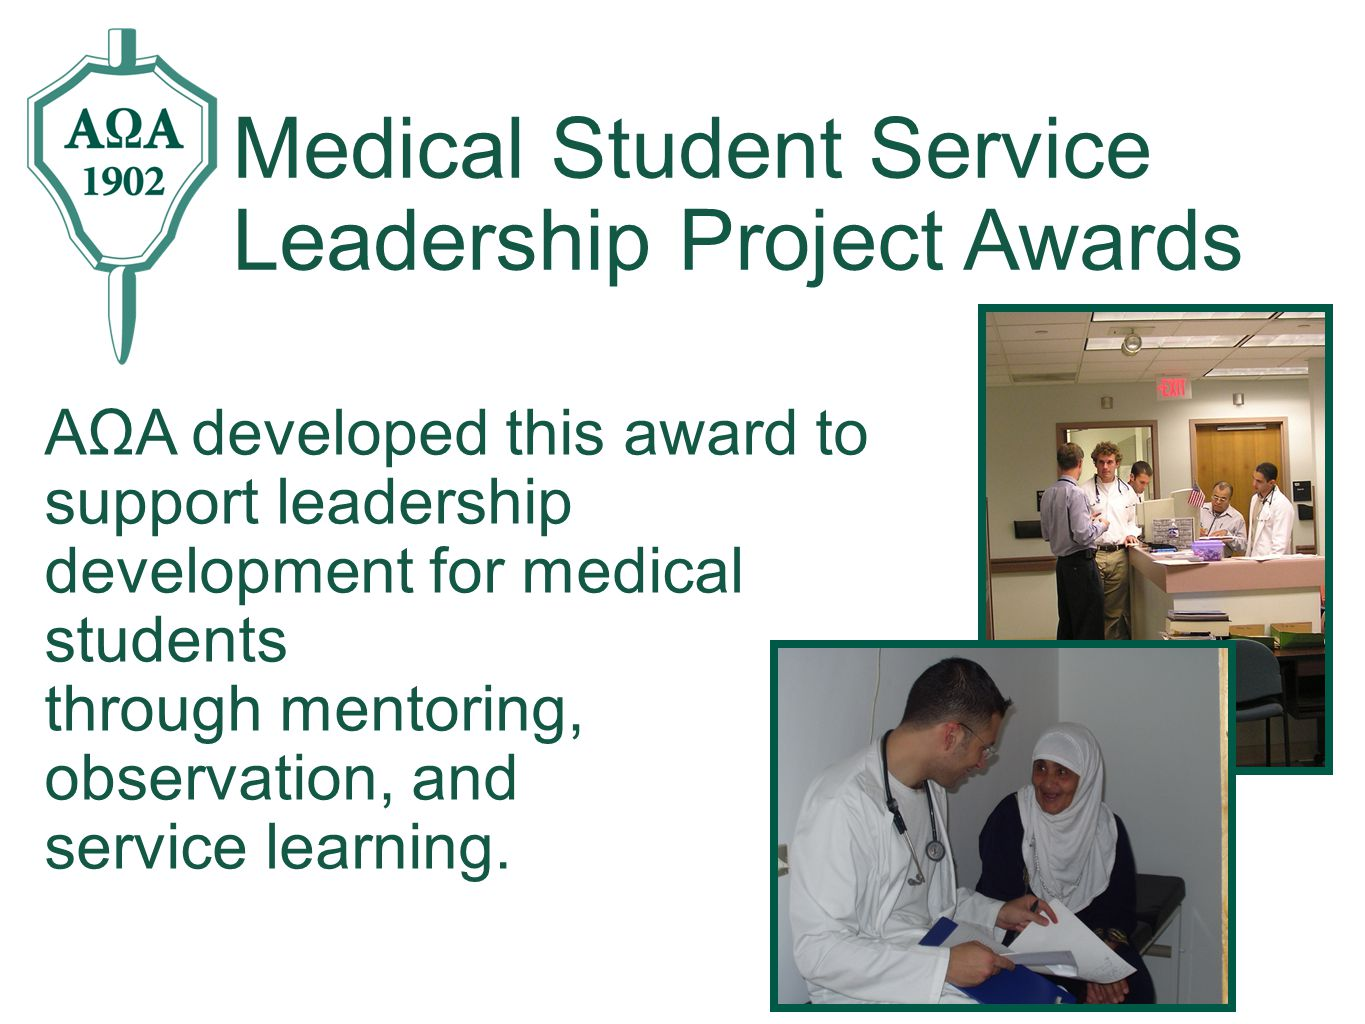 AΩA developed this award to support leadership development for medical students through mentoring, observation, and service learning.